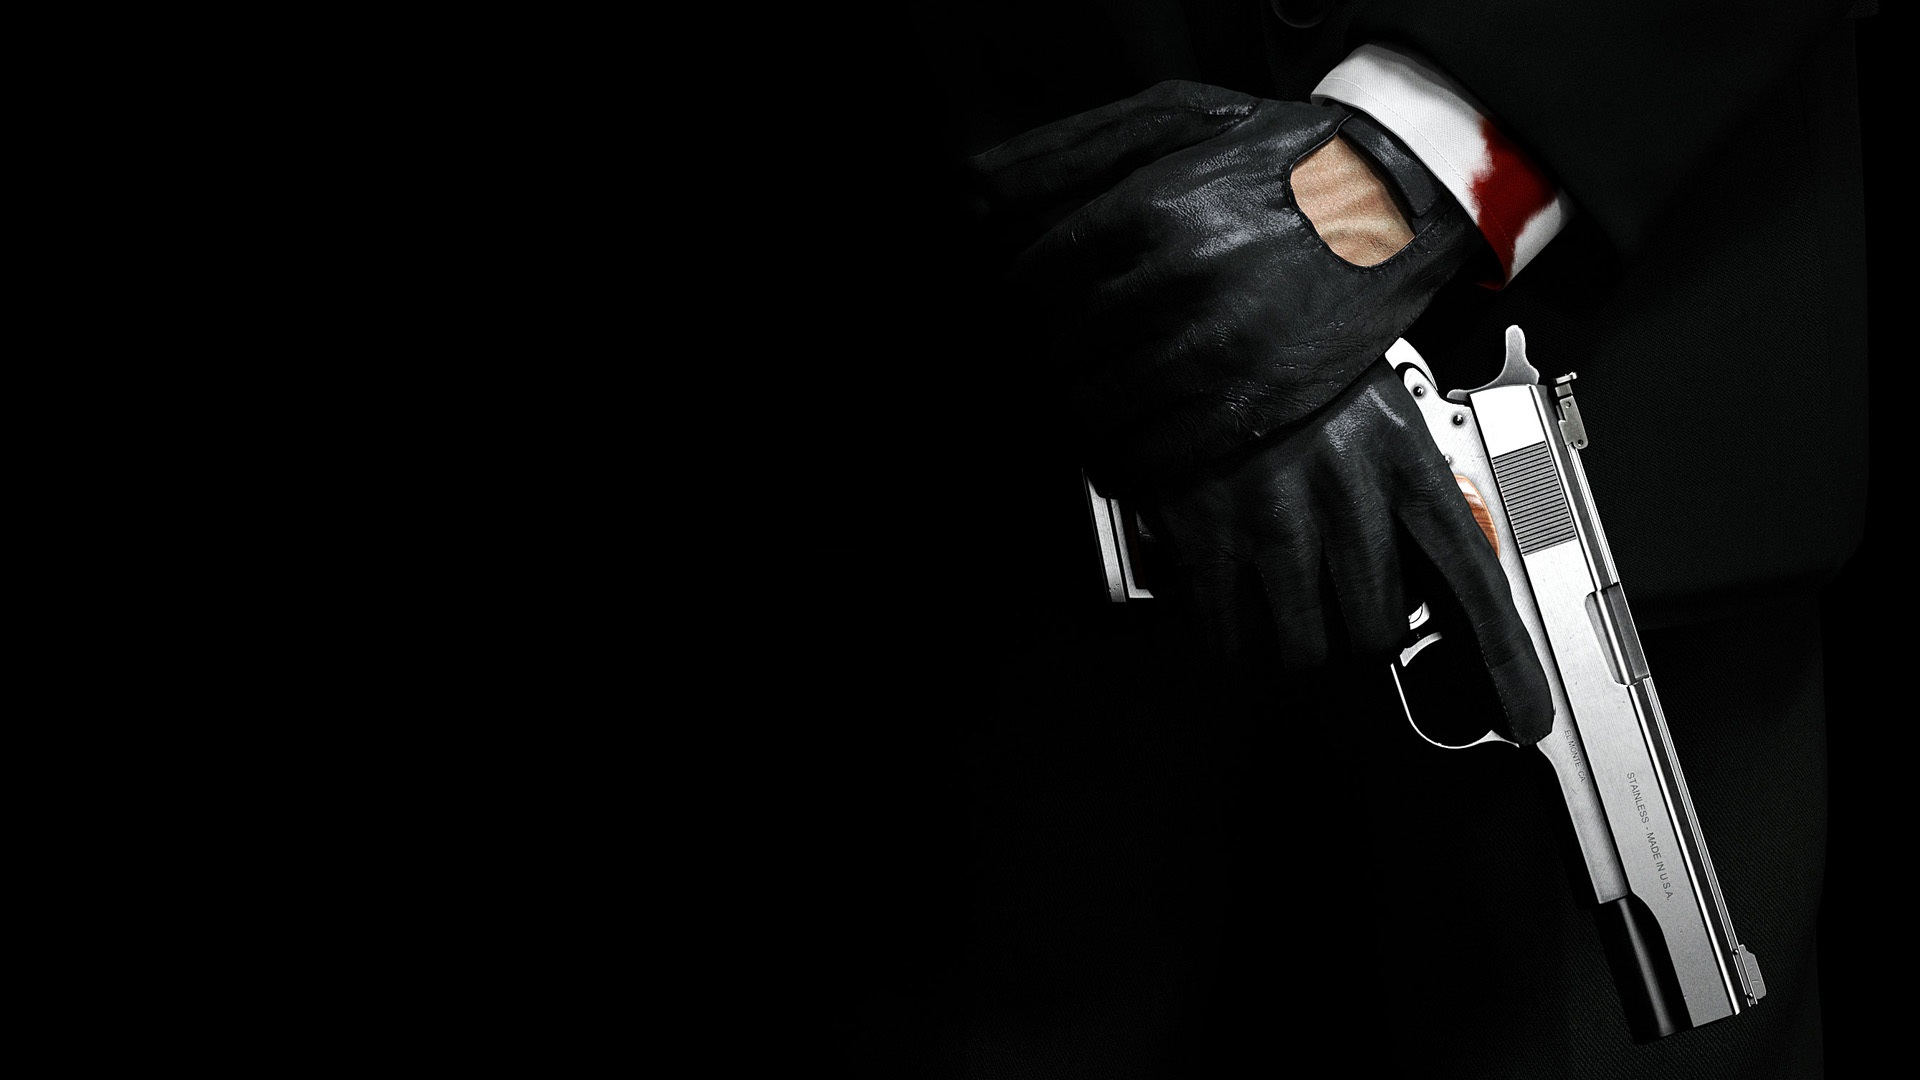 Video Game   Hitman Wallpaper 1920x1080